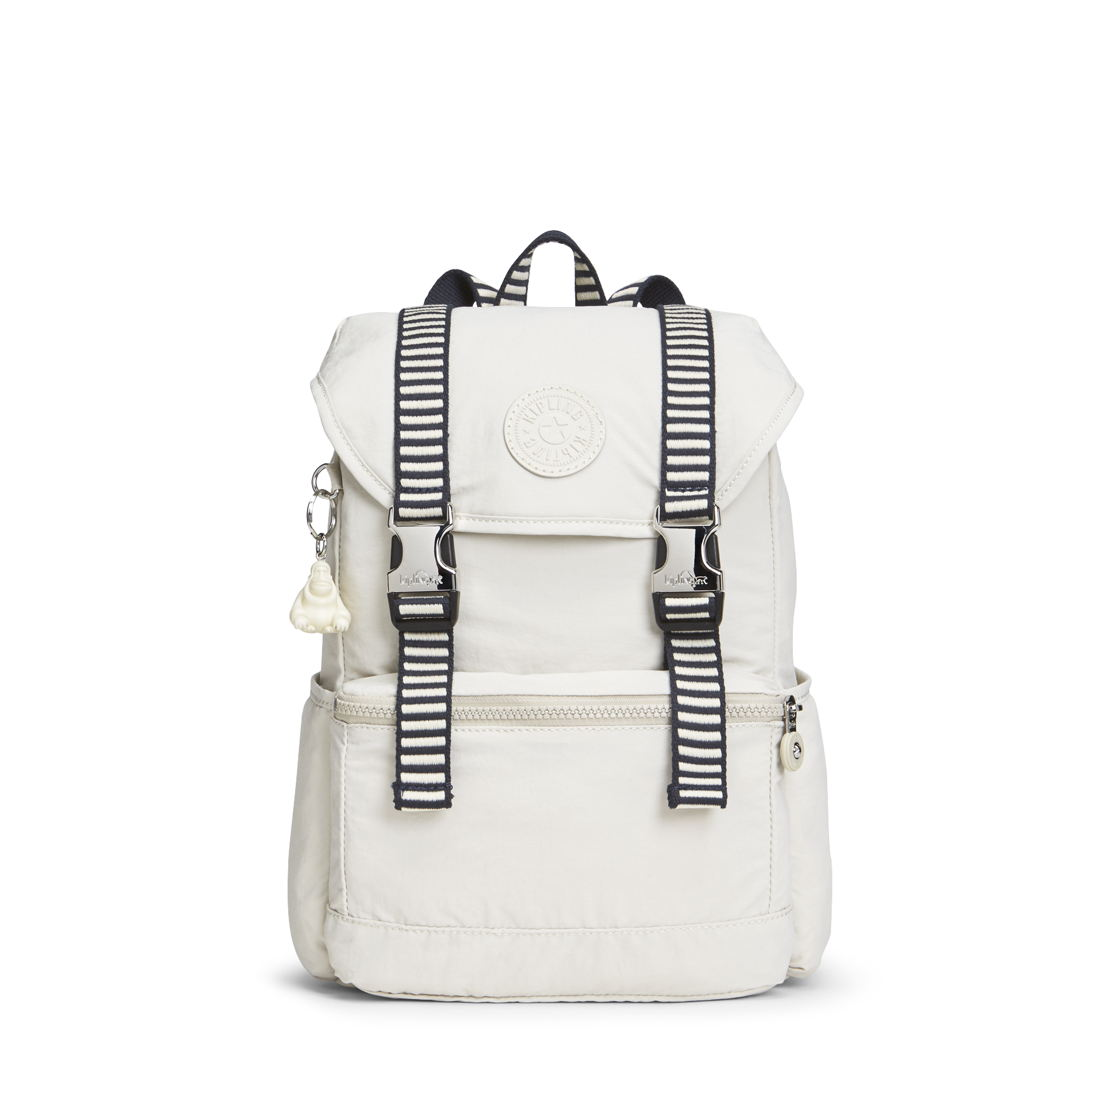 Experience S Canvas White